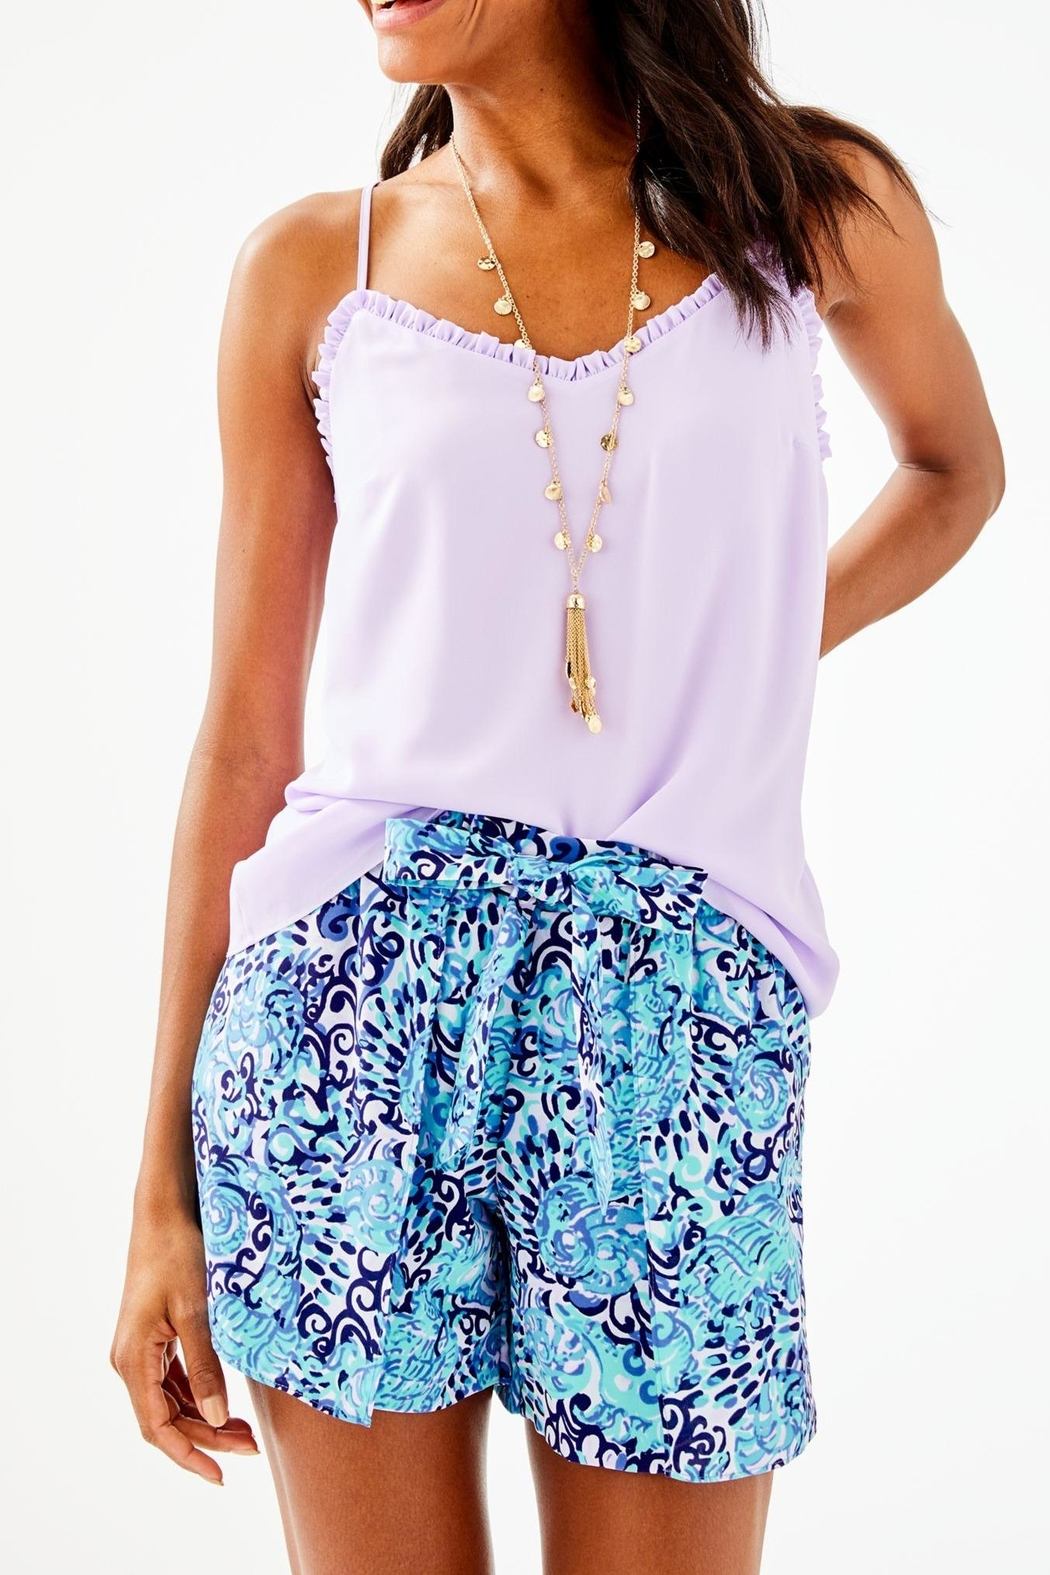 Lilly Pulitzer Ruffled Dusk Top - Main Image